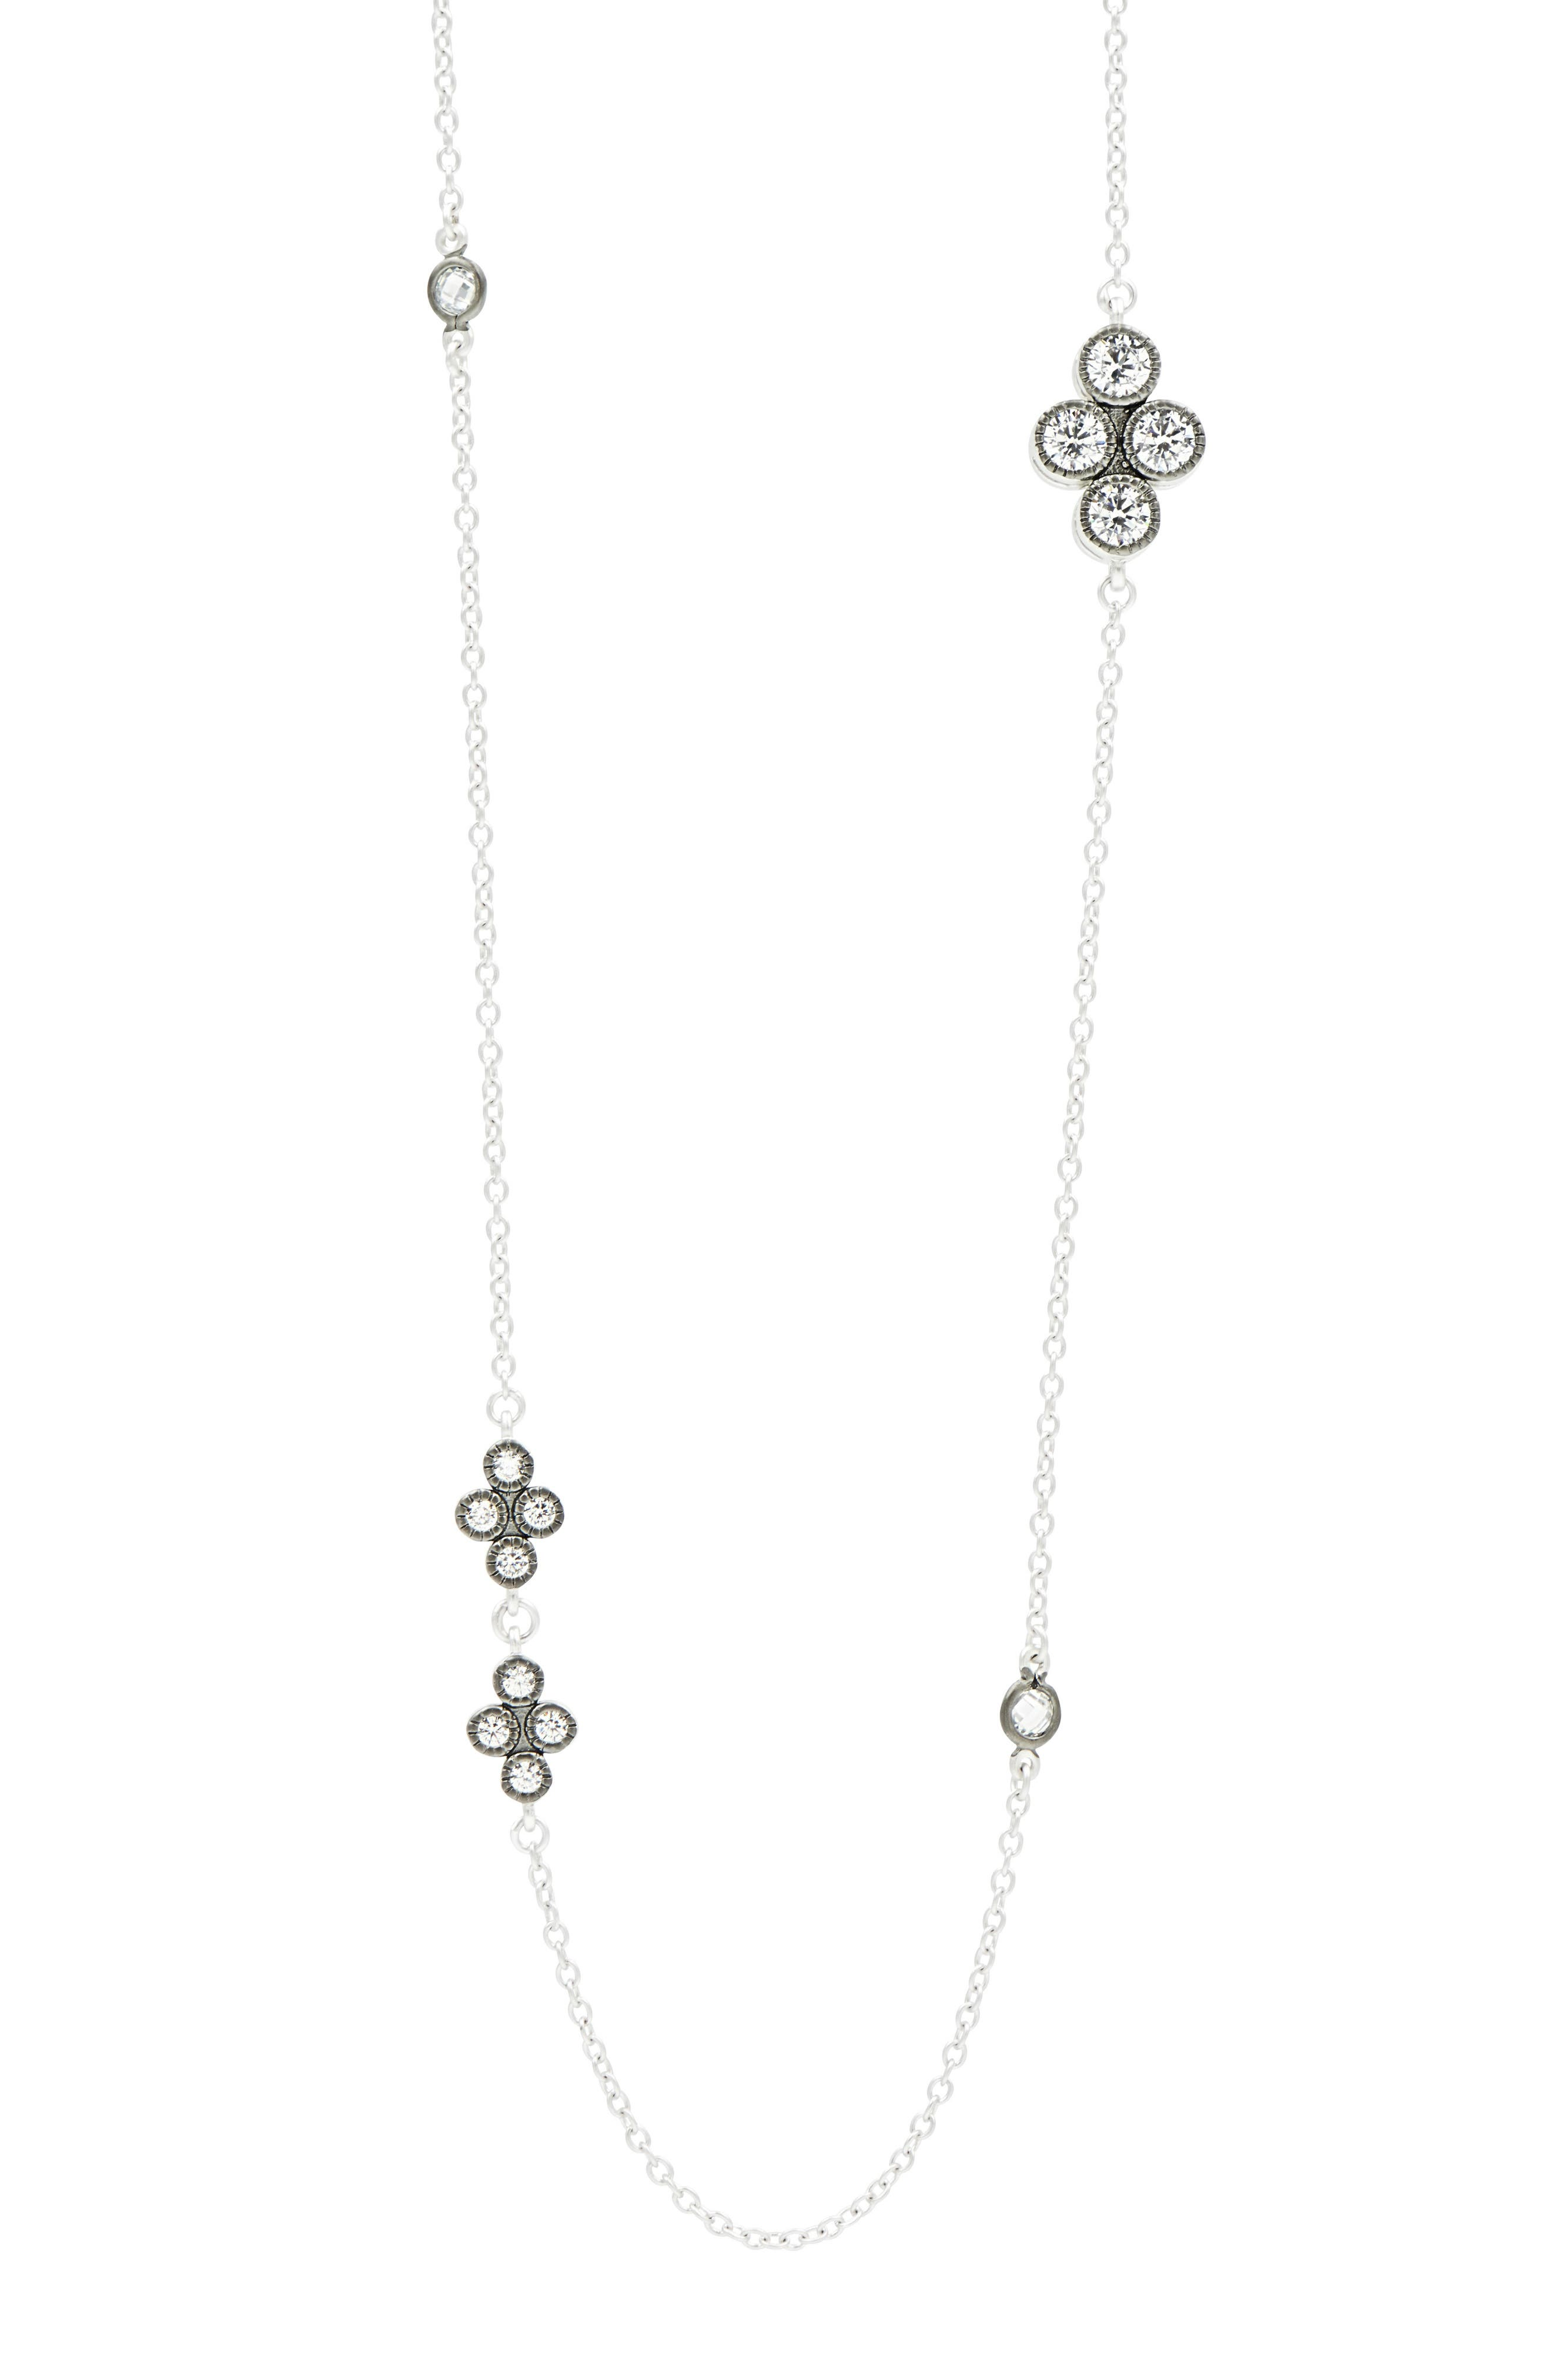 Industrial Finish Long Station Necklace,                             Alternate thumbnail 2, color,                             Black/ Silver